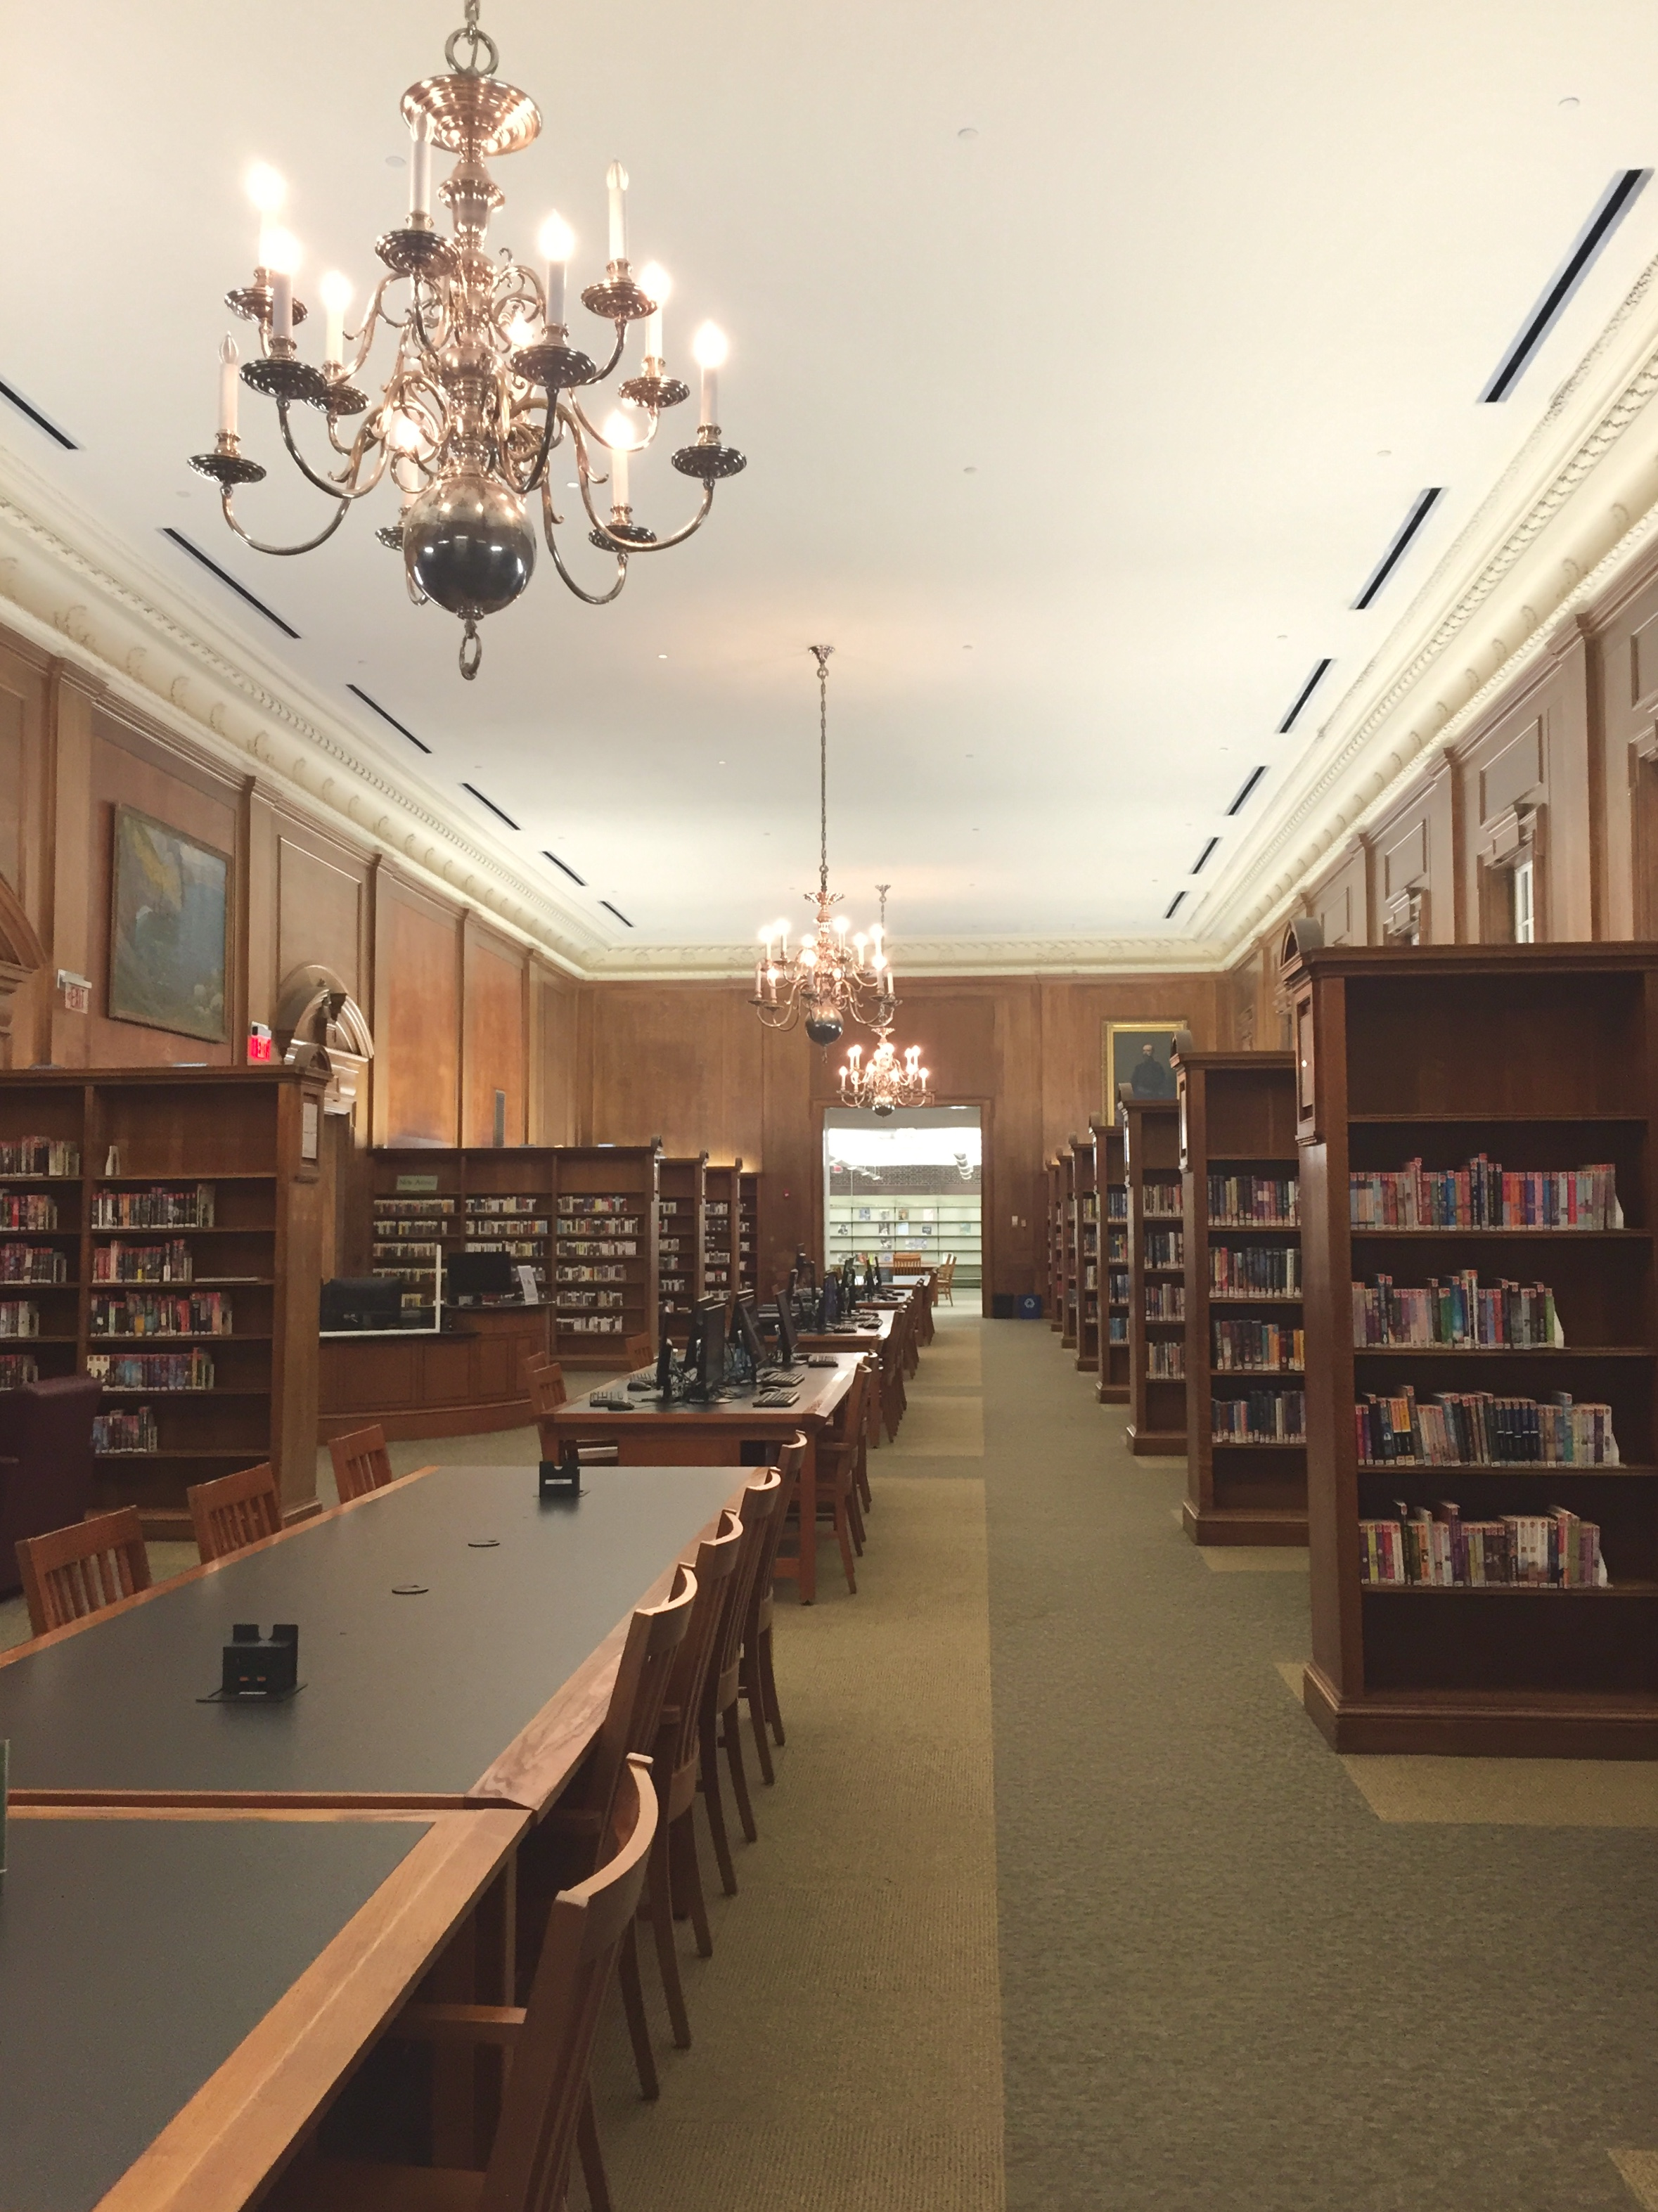 An empty study room in the author's local library. Photo taken by the author.